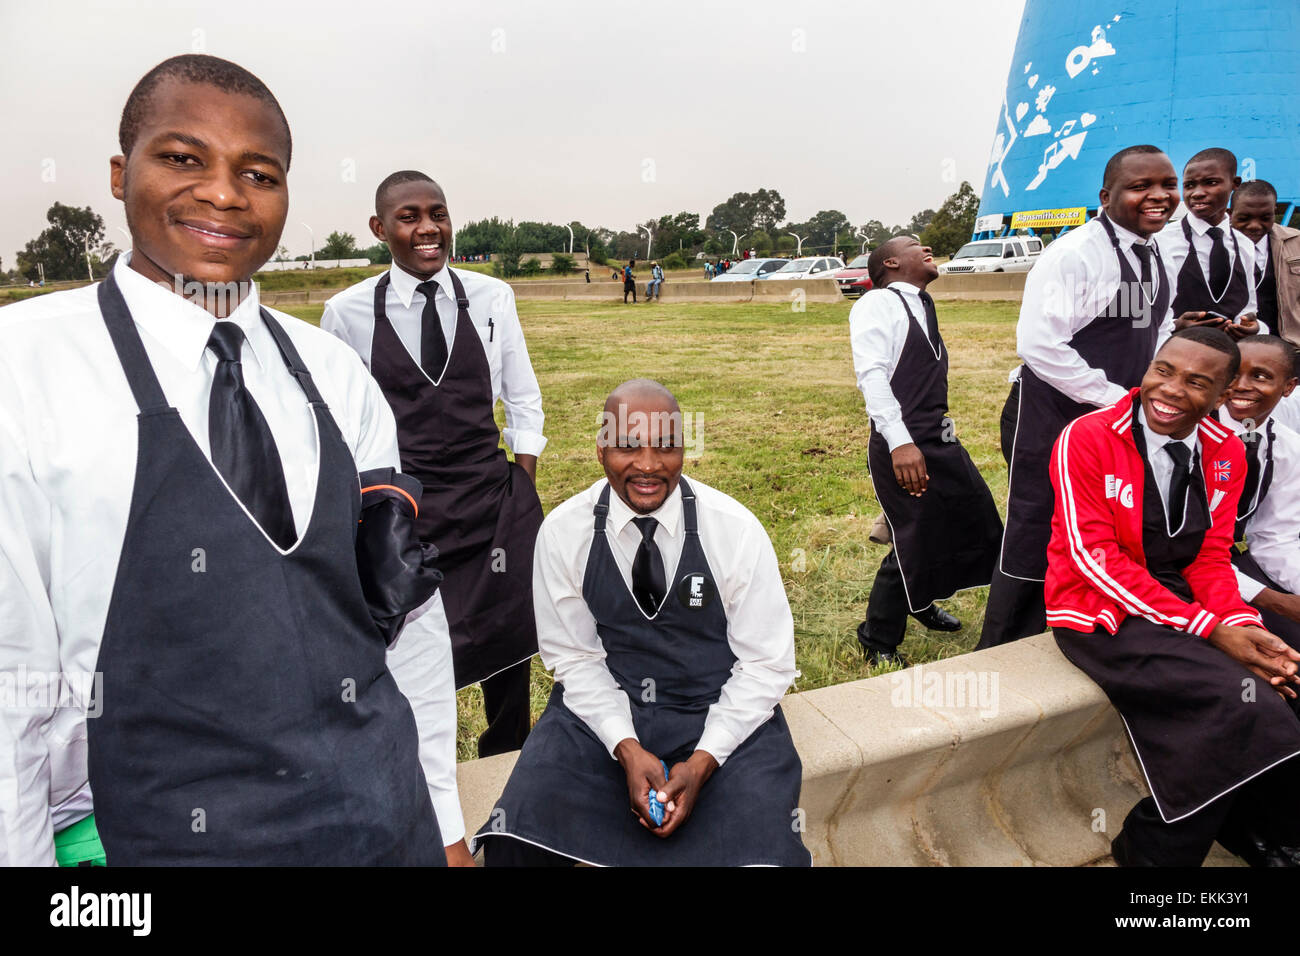 Johannesburg South Africa African Nasrec FNB Soccer City Stadium The Calabash Black man coworkers uniform before - Stock Image